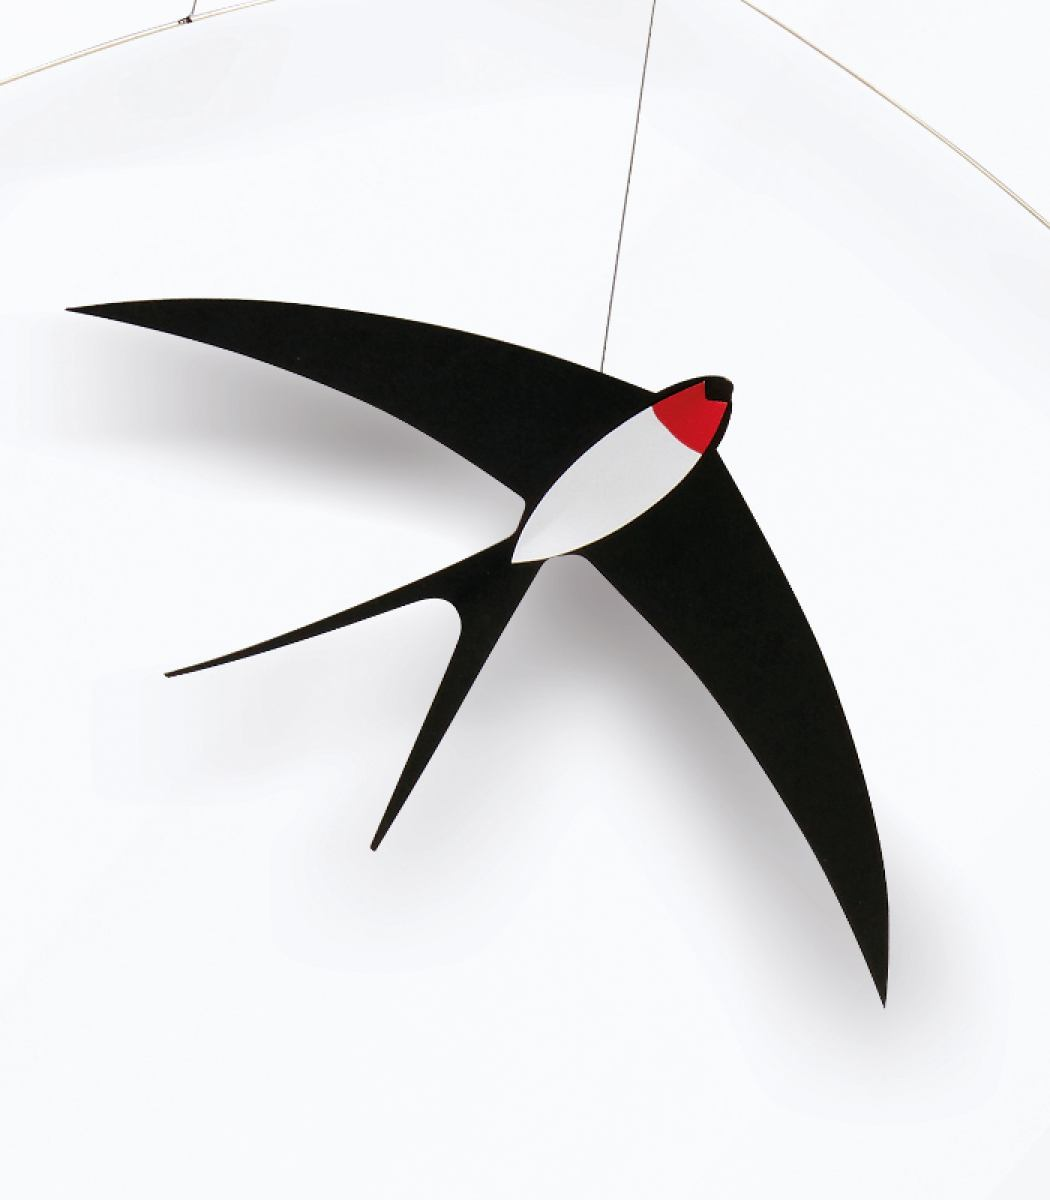 Five Swallows - Mobile for babies and children by Flensted | Kunstbaron